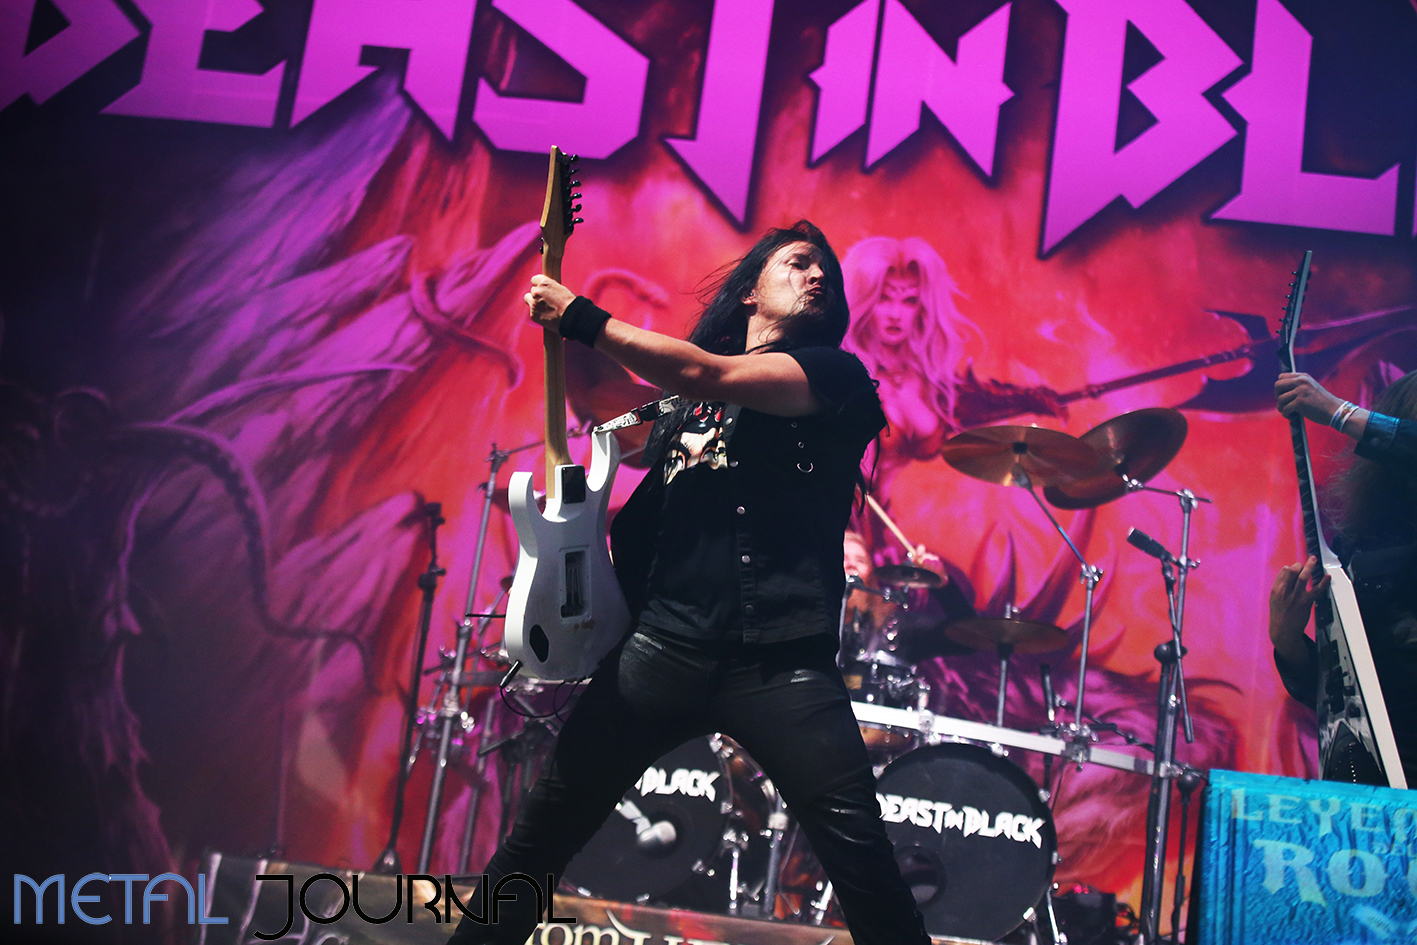 beast in black - leyendas del rock 2019 metal journal pic 5